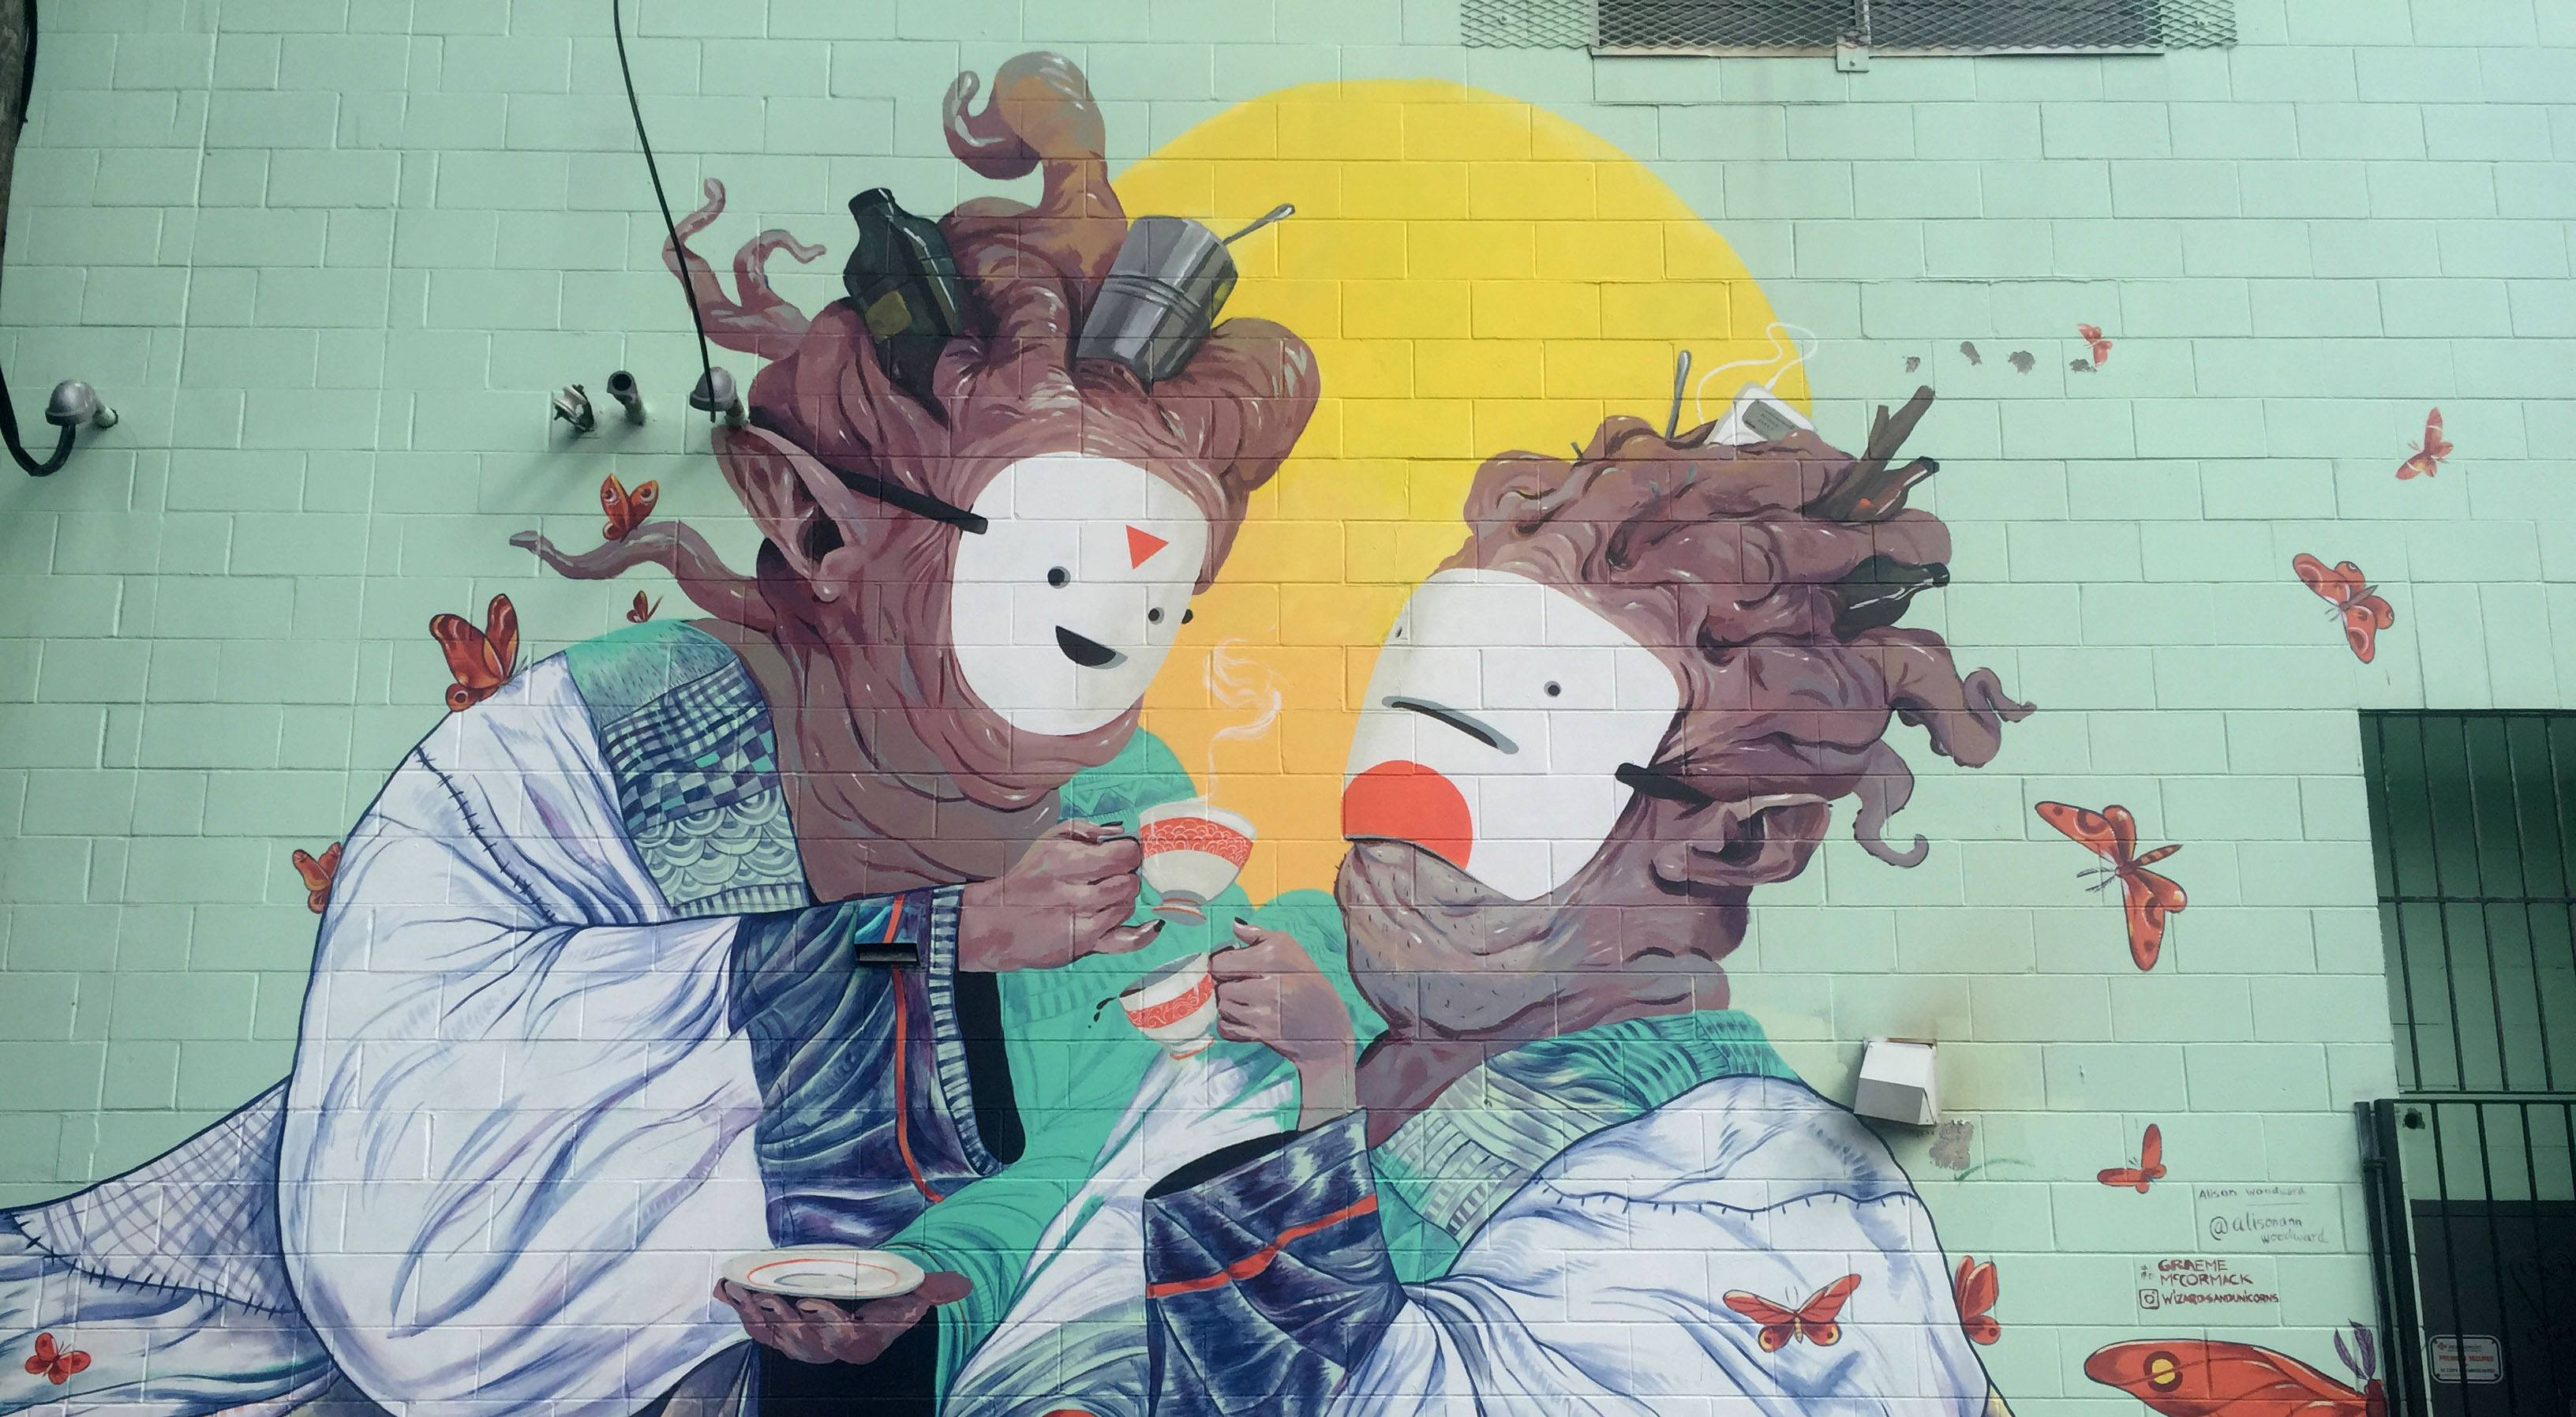 Vancouver Mural Festival Map: Where to find all 41 new permanent murals in the city